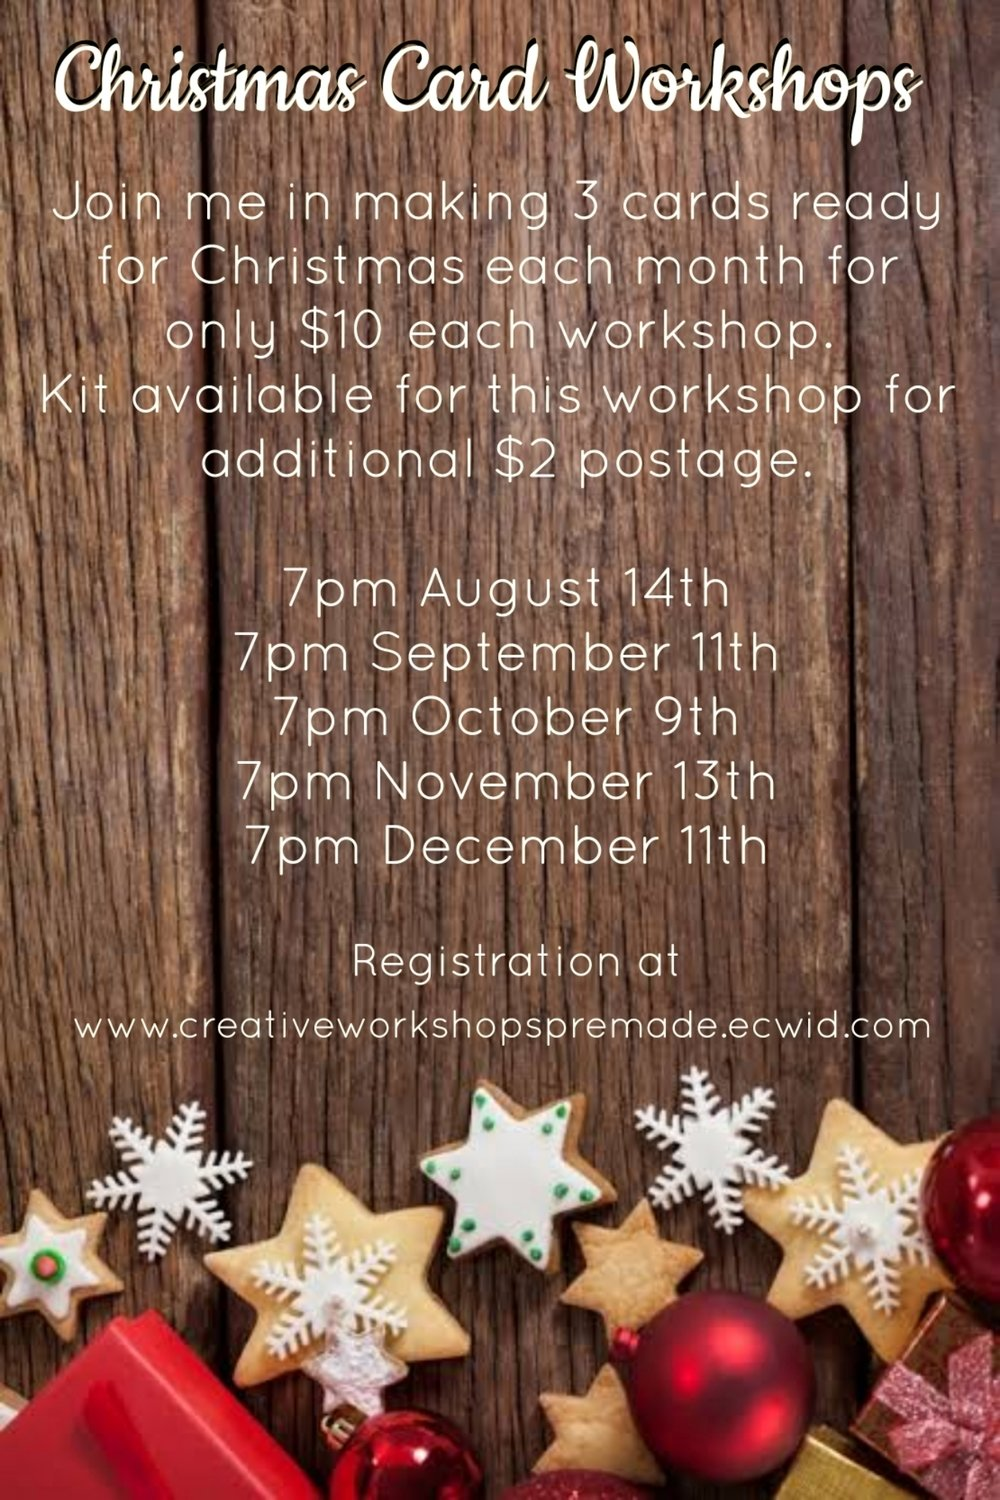 Christmas Card Workshop 11th December